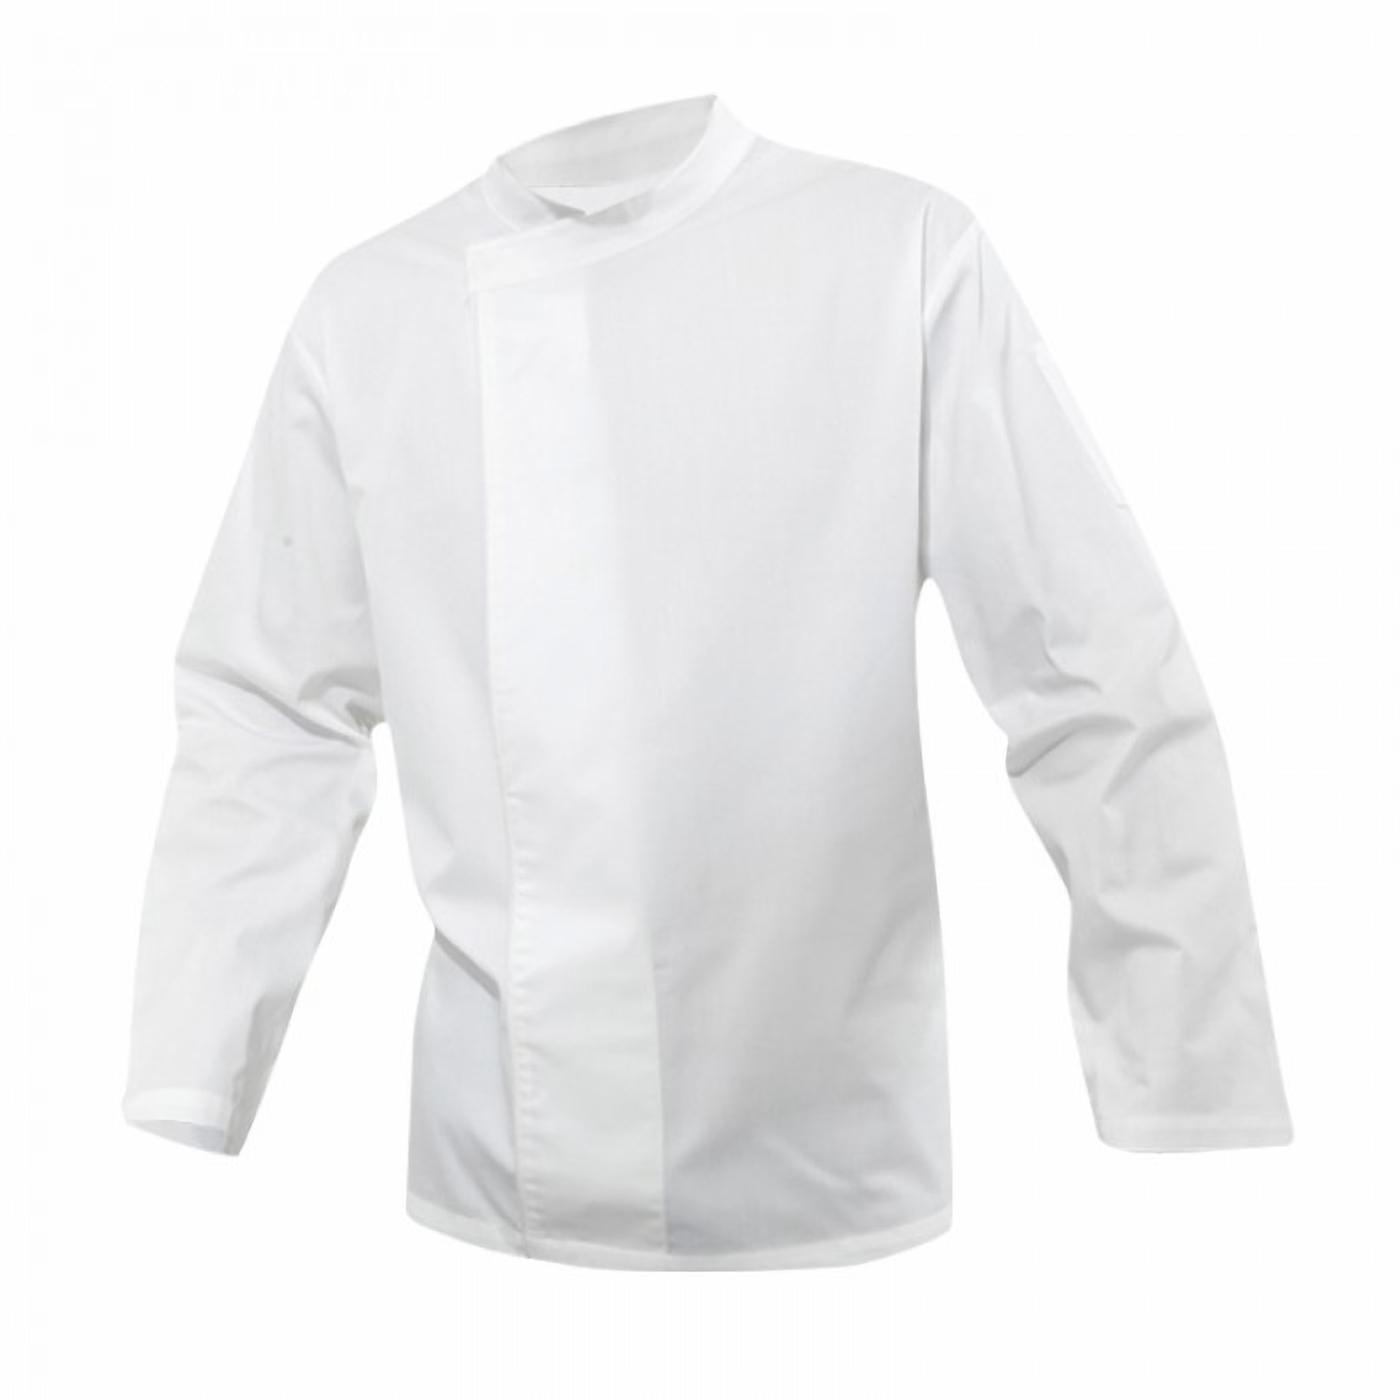 Premier Unisex Culinary Pull-on - Chefs Long Sleeve Tunic